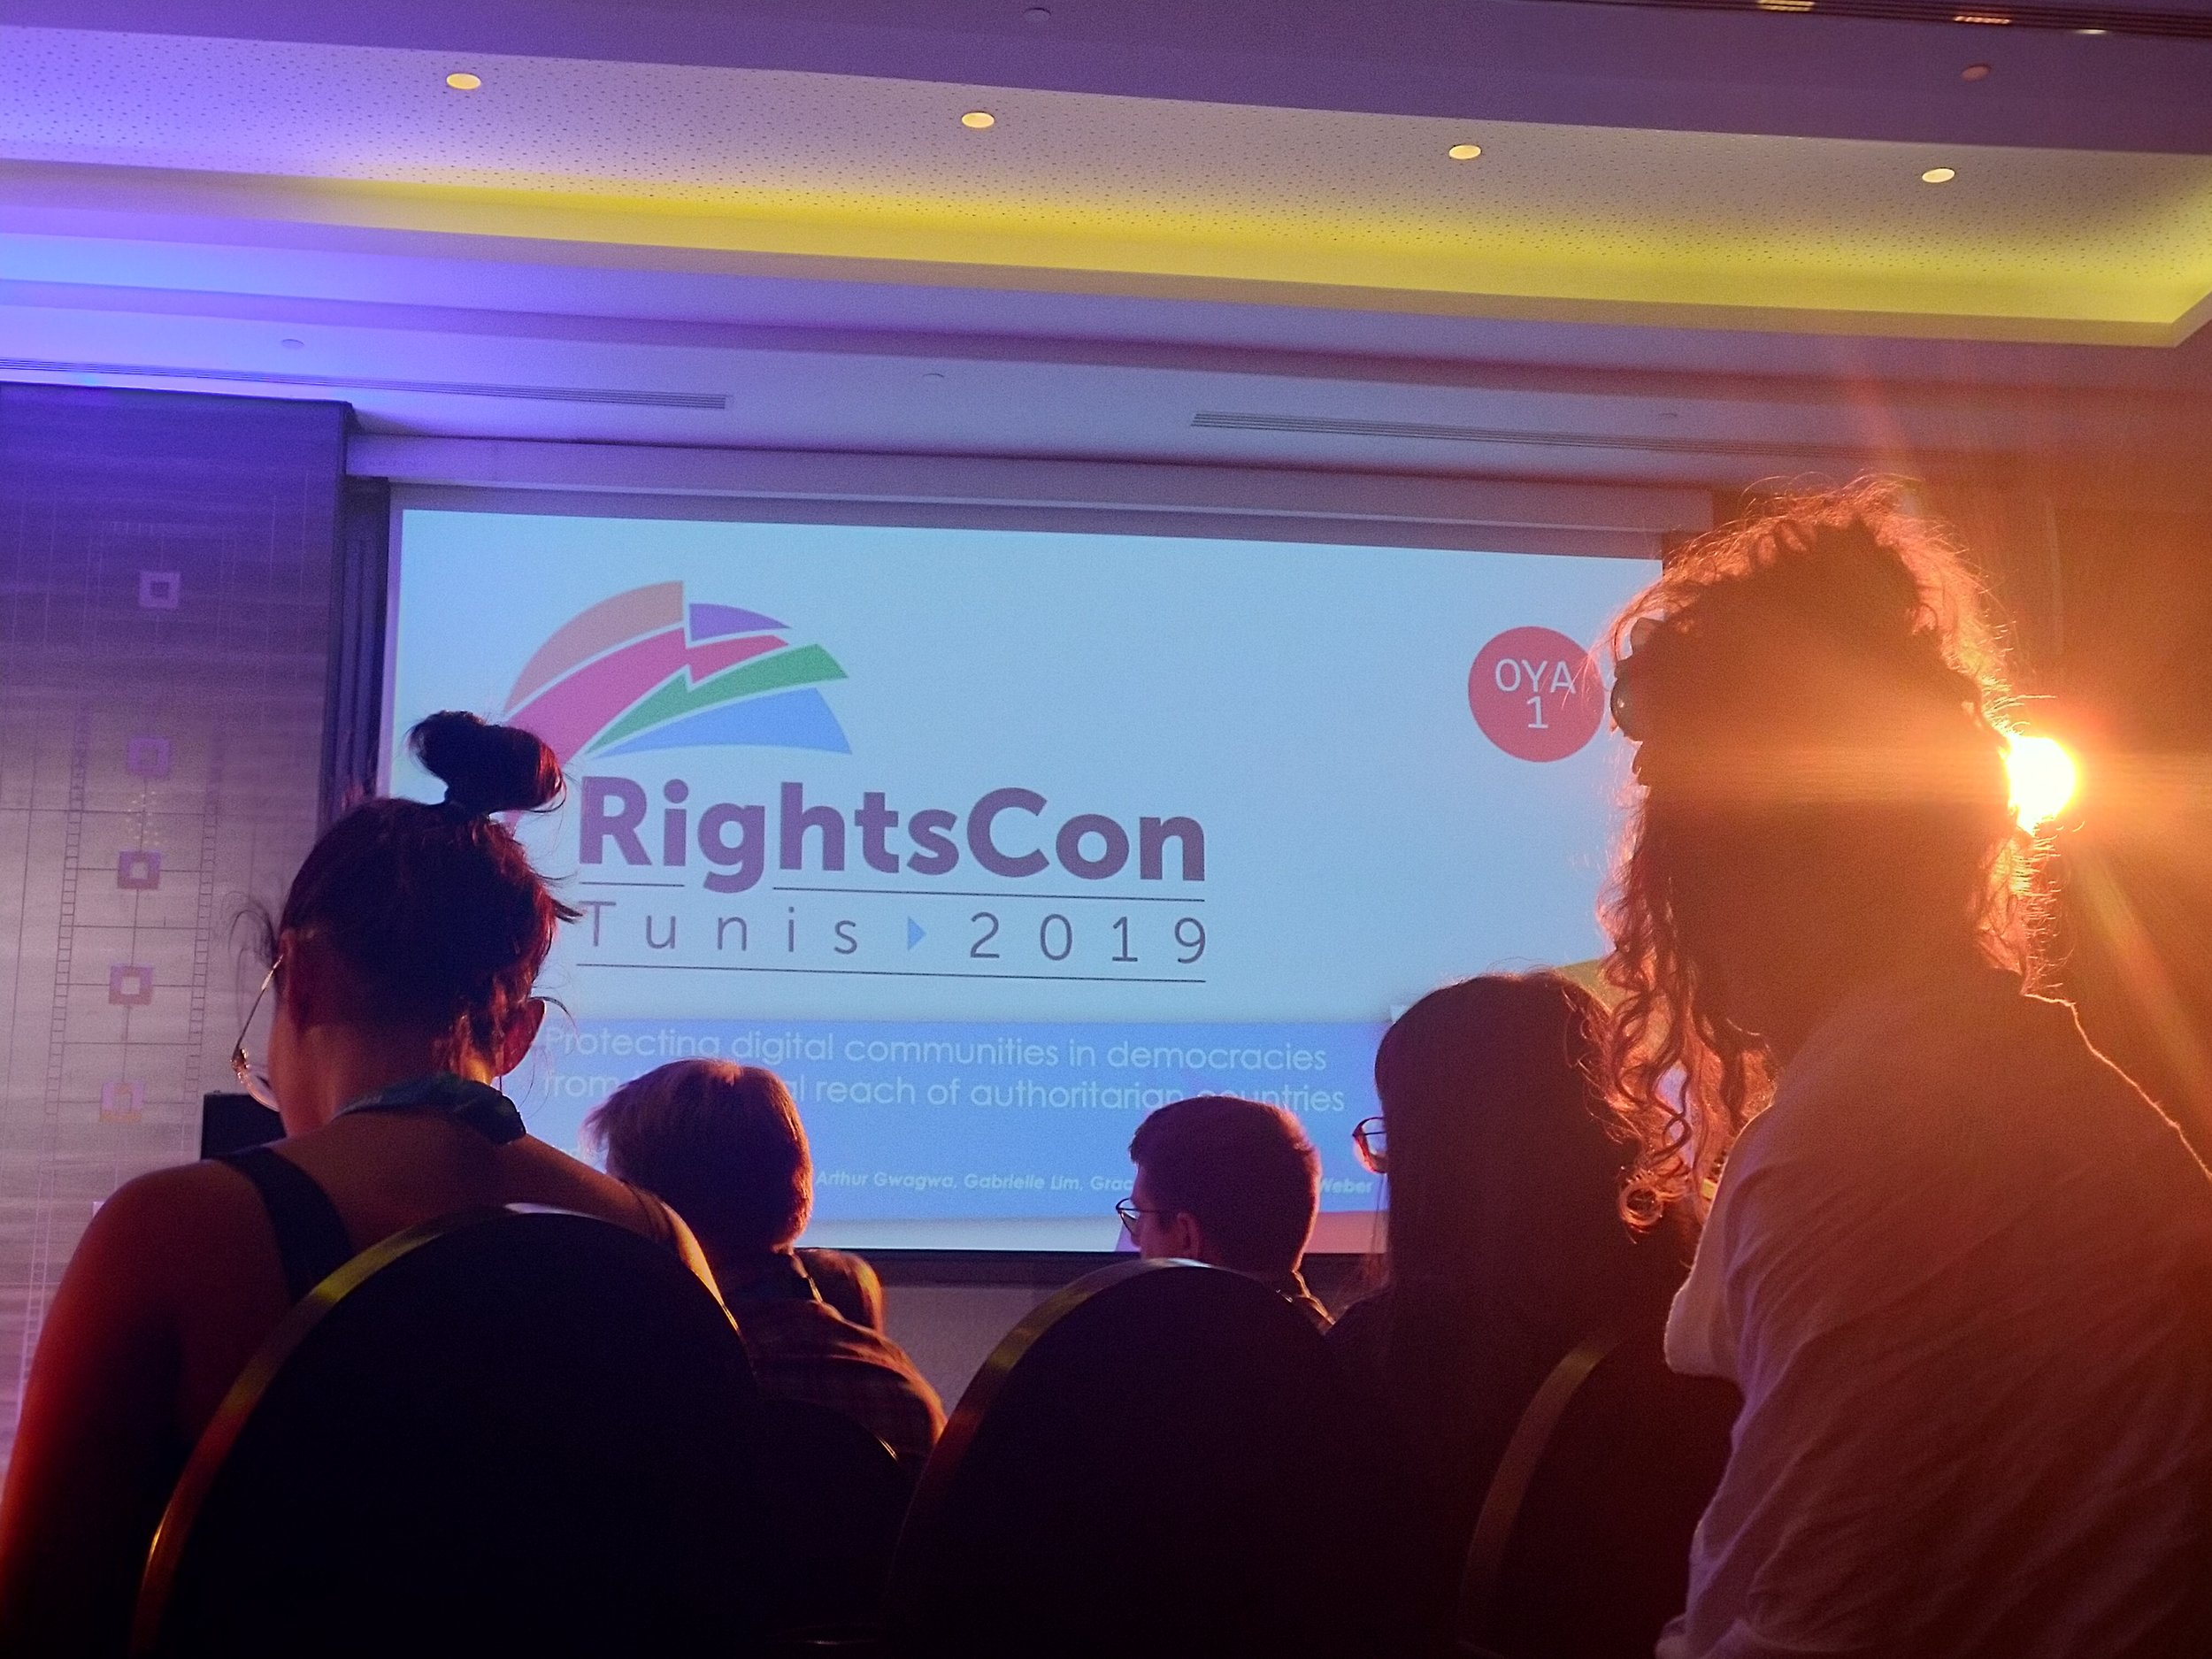 """Picture showing a big canvas displaying the topic of a session, captured from the back, with people in the foreground and a beam of light streaming through a girls hair from the podium. The projected image on the canvas reads """"RightsCon Tunis 2019"""" and """"Protecting digital communities in democracies from the digital reach of authoritarian countries"""". Photo: Private/Lisa-Marie M. Selvik."""